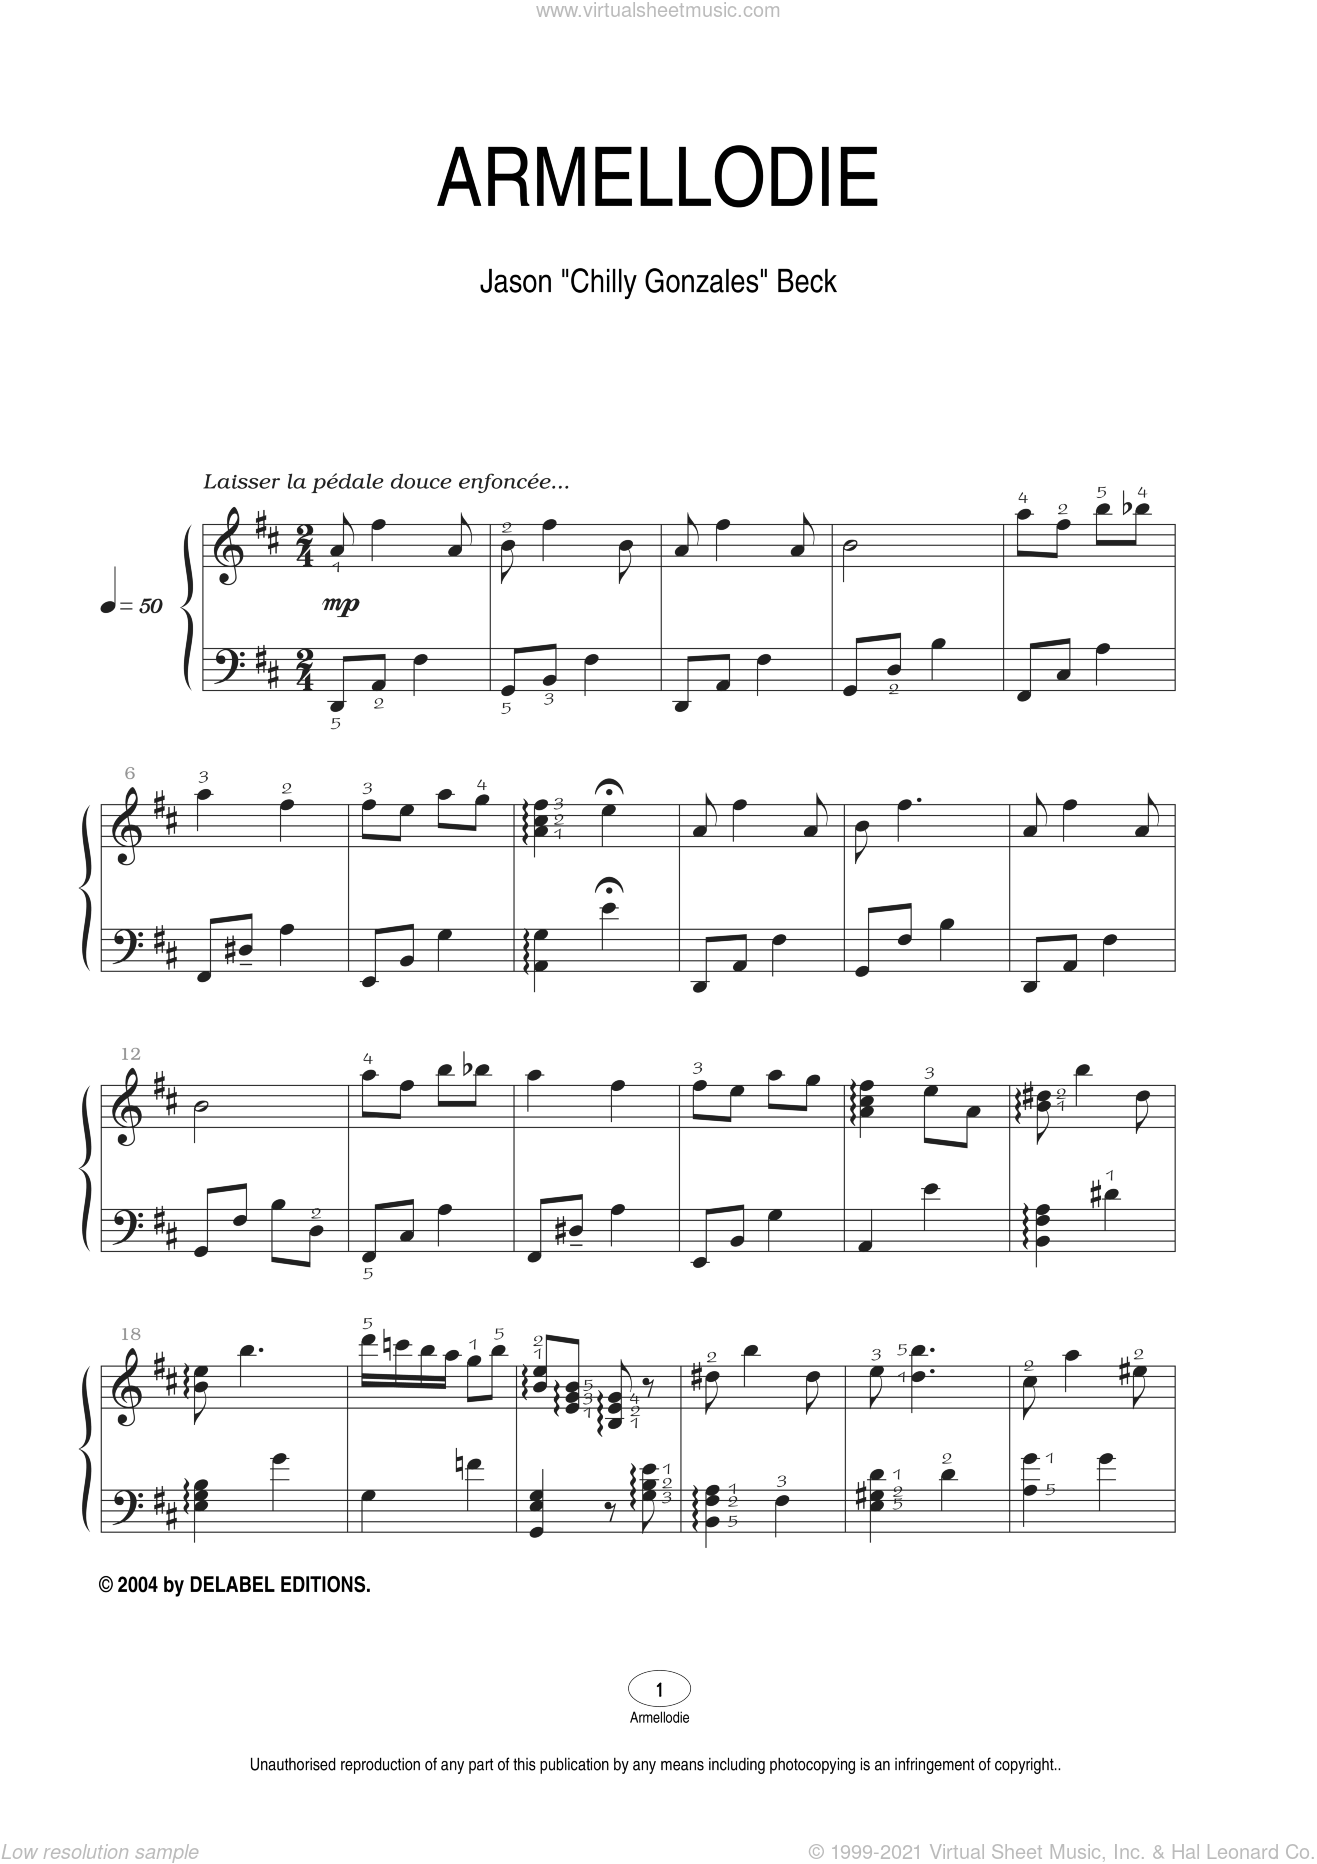 Armellodie sheet music for piano solo by Chilly Gonzales